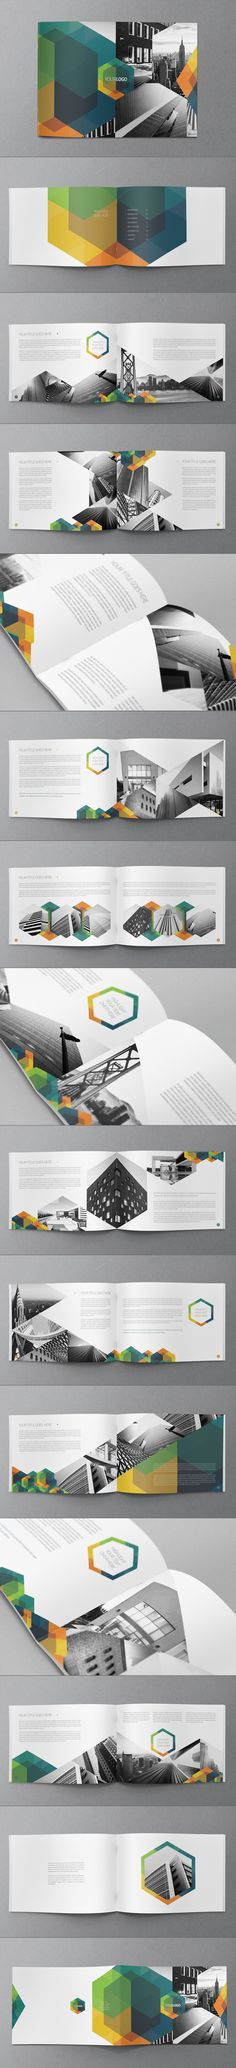 Hexo Brochure Design by Abra Design, via Behance #brochure #design